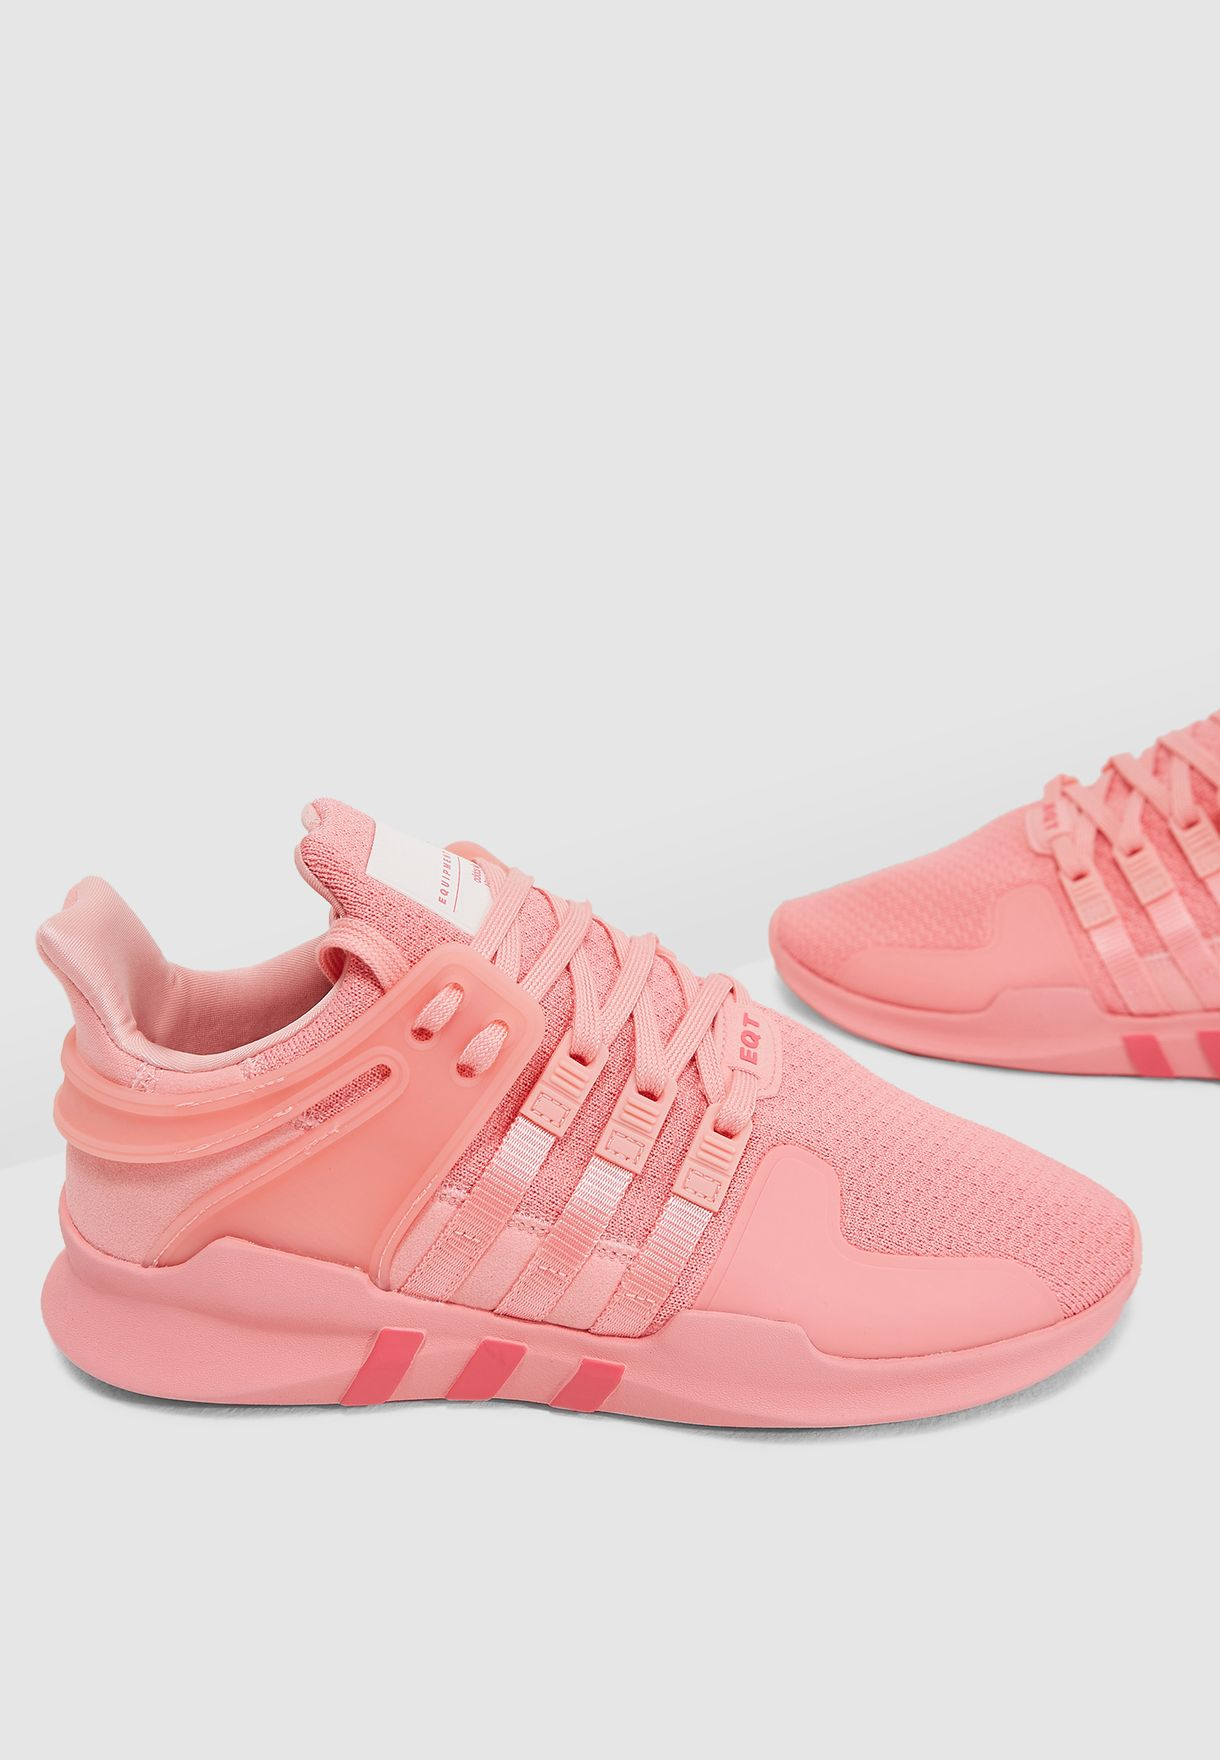 hot sale online 5e700 f7f6e Shop adidas Originals pink EQT Support ADV B37541 for Women